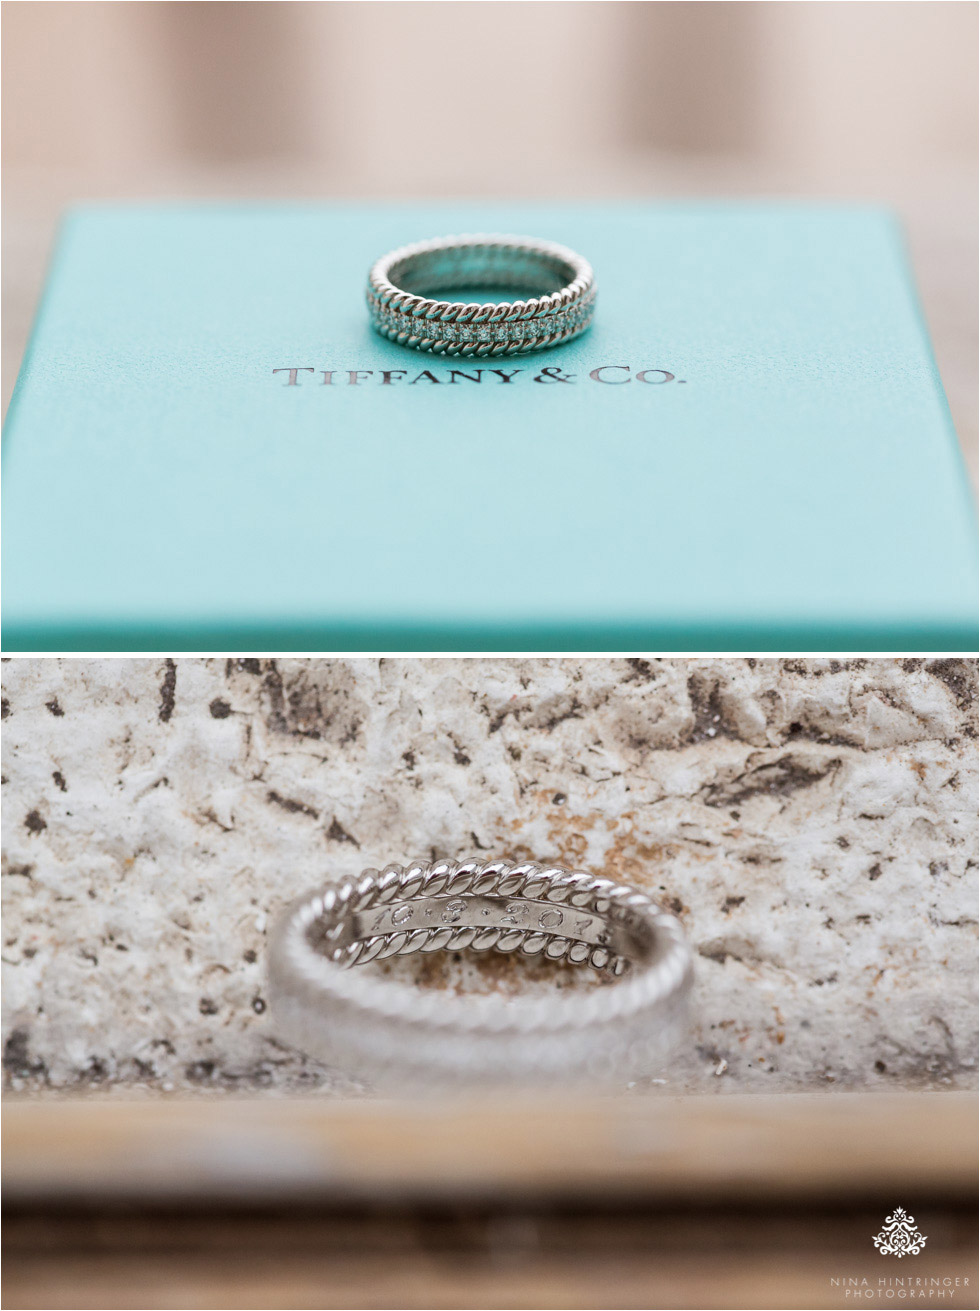 Tiffany wedding rings - Blog of Nina Hintringer Photography - Wedding Photography, Wedding Reportage and Destination Weddings